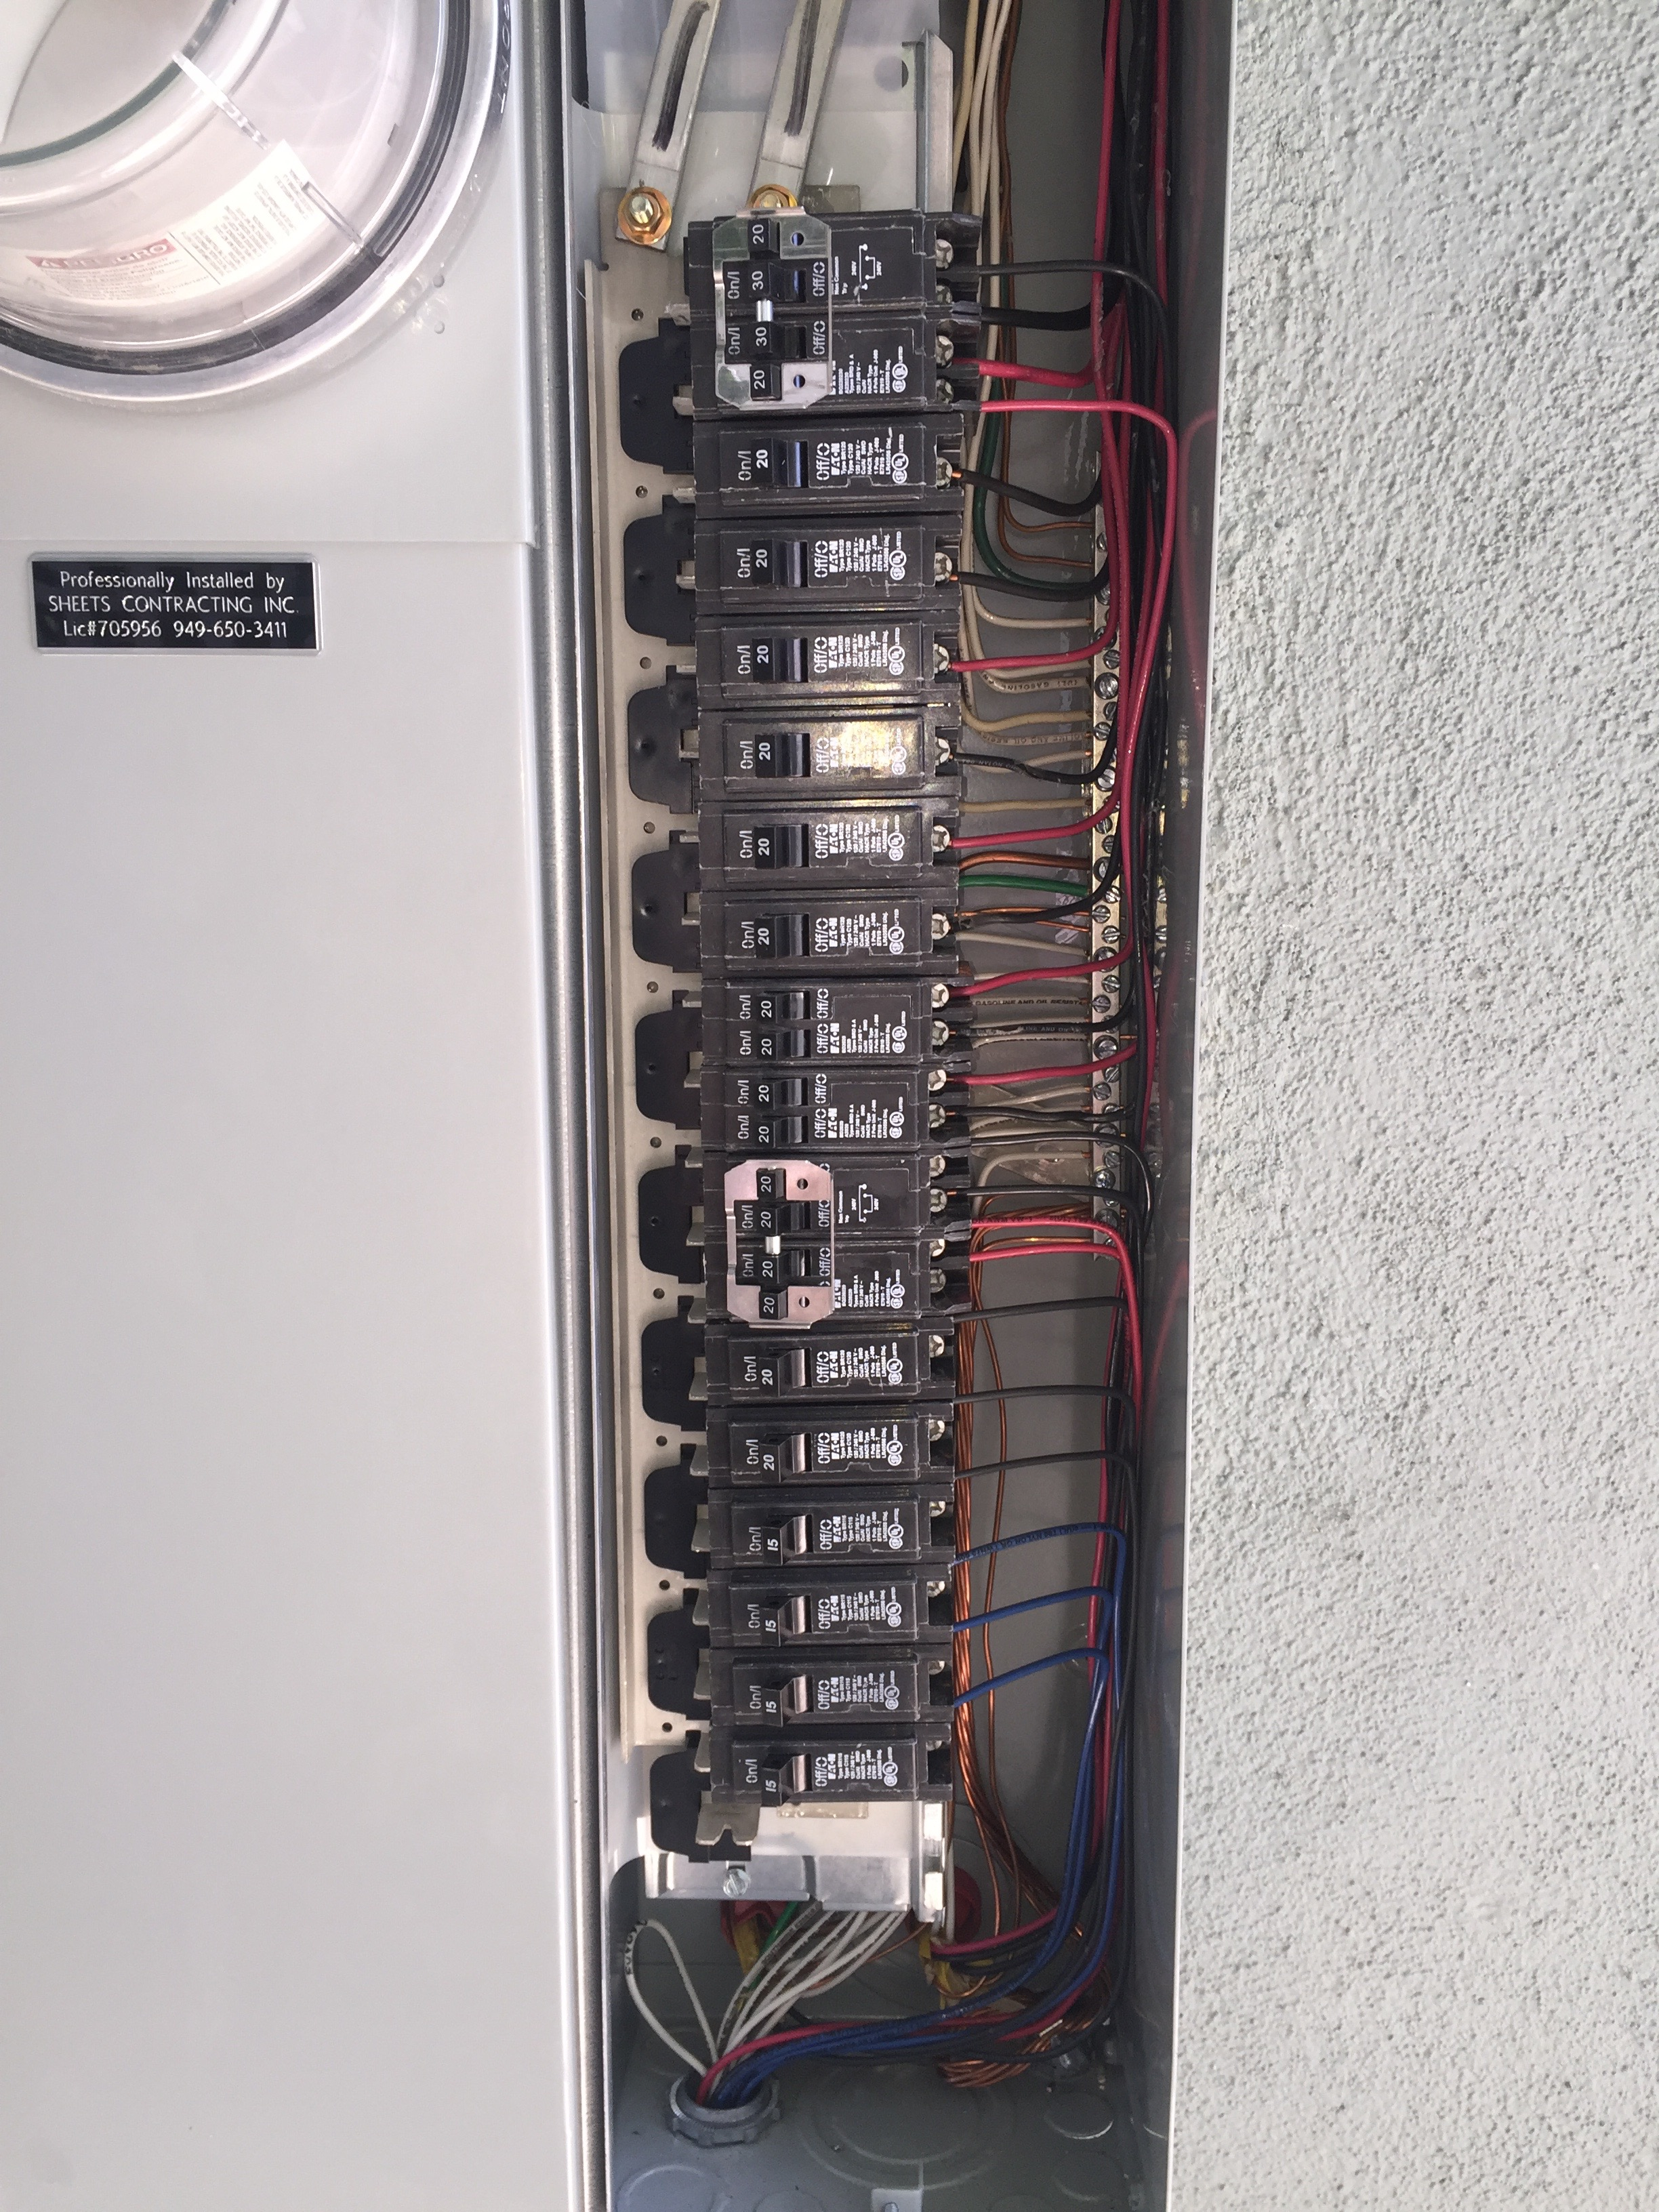 200 amp service panel for charger